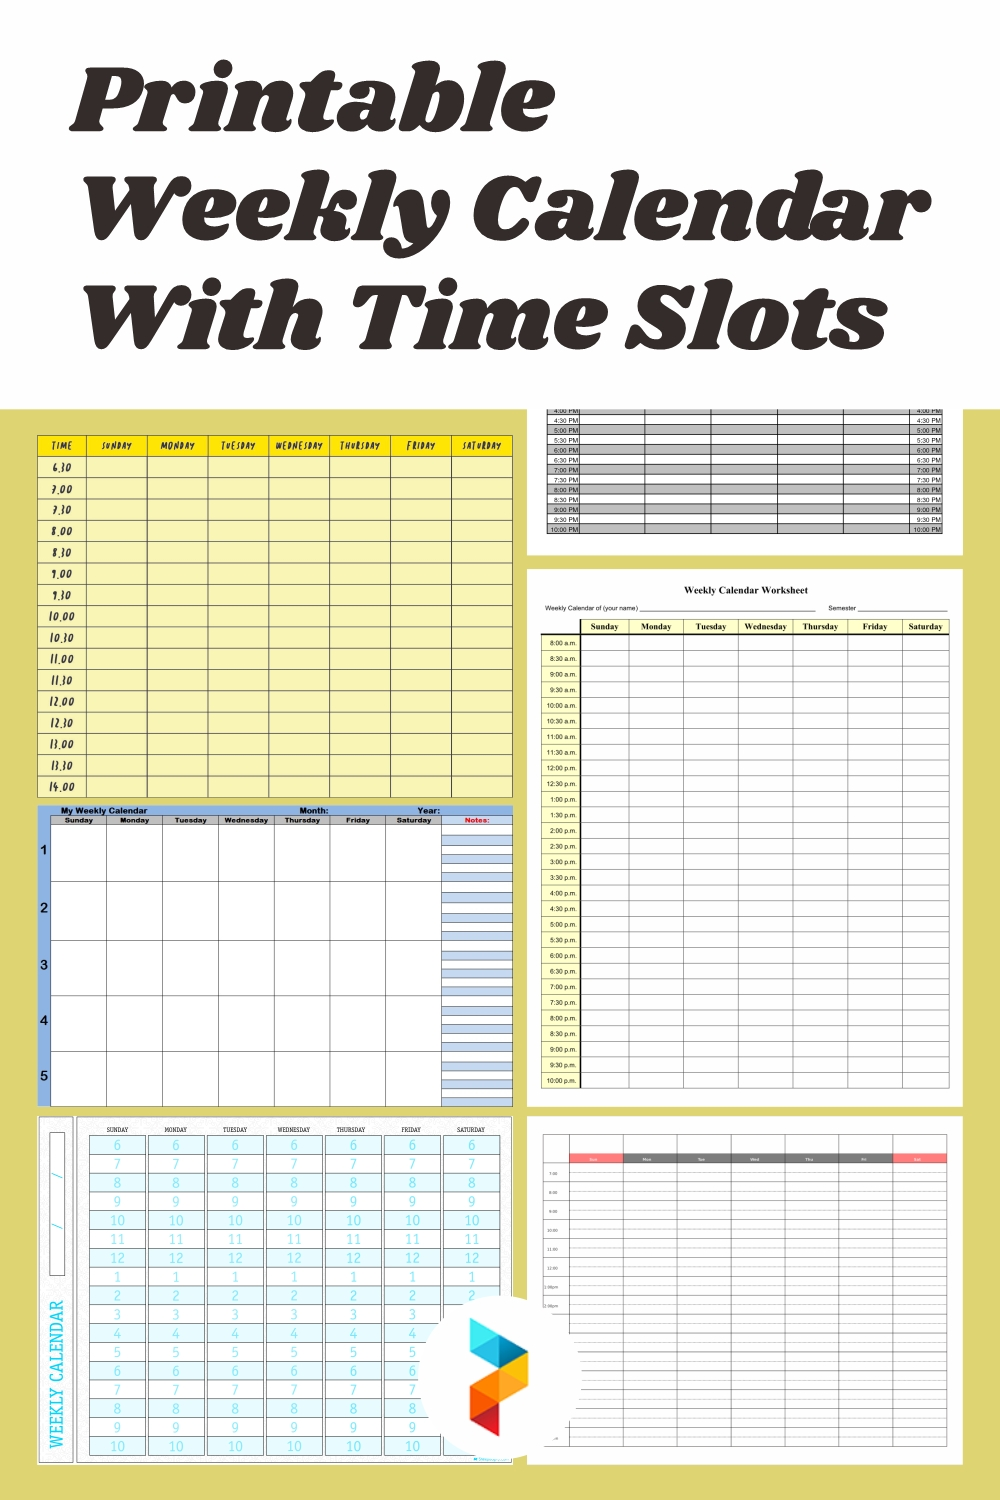 Get Printable Schedule With Time Slots